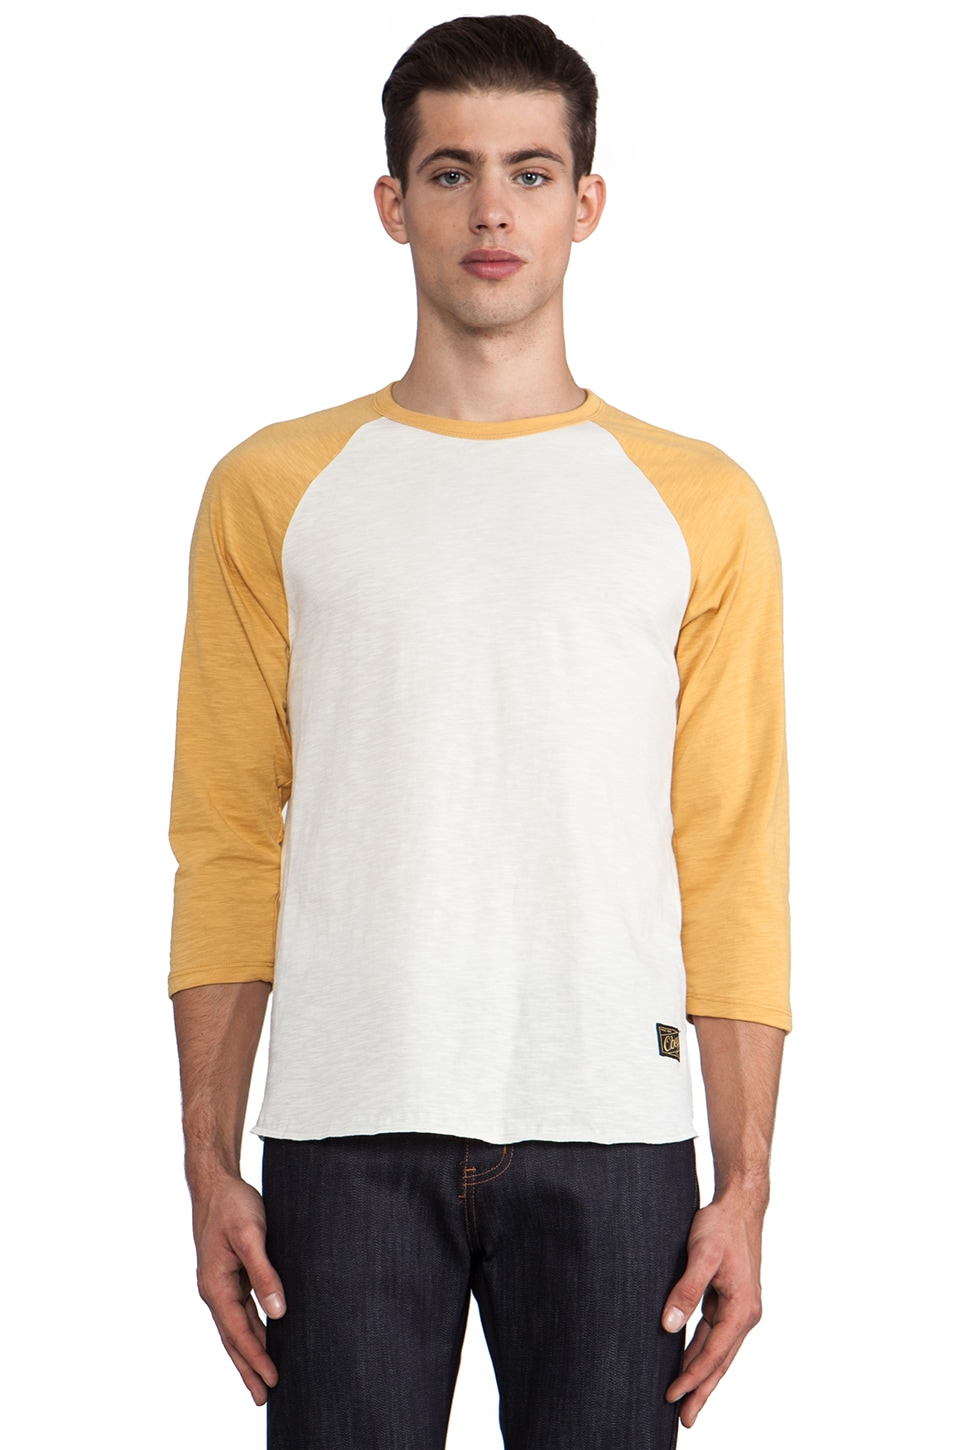 Obey Old Timey Slub Raglan in Natural/Honey Gold